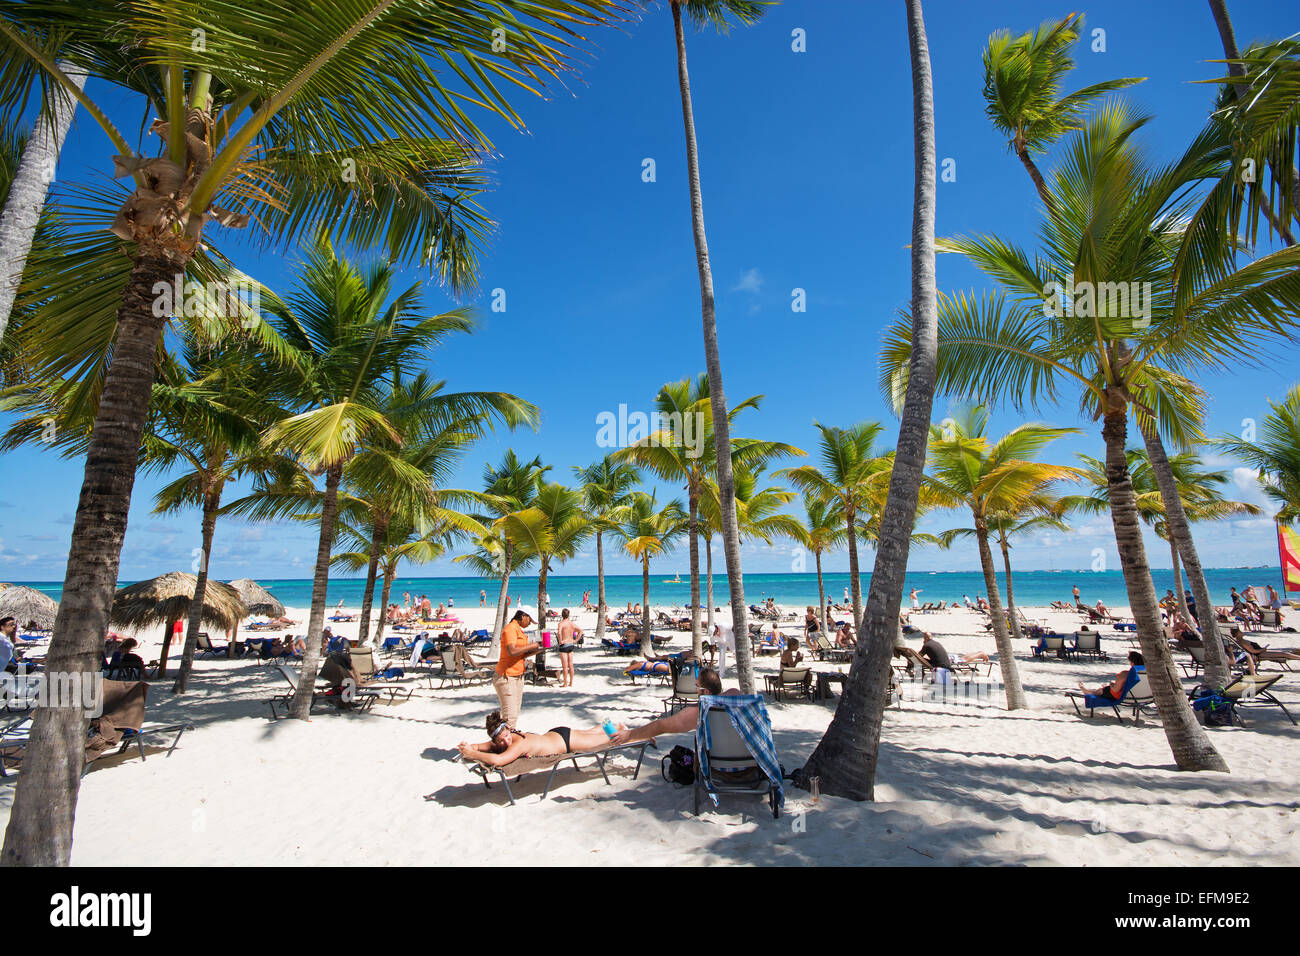 DOMINICAN REPUBLIC. Secrets Royal Beach adults-only resort at Punta Cana on the east coast. 2015. - Stock Image